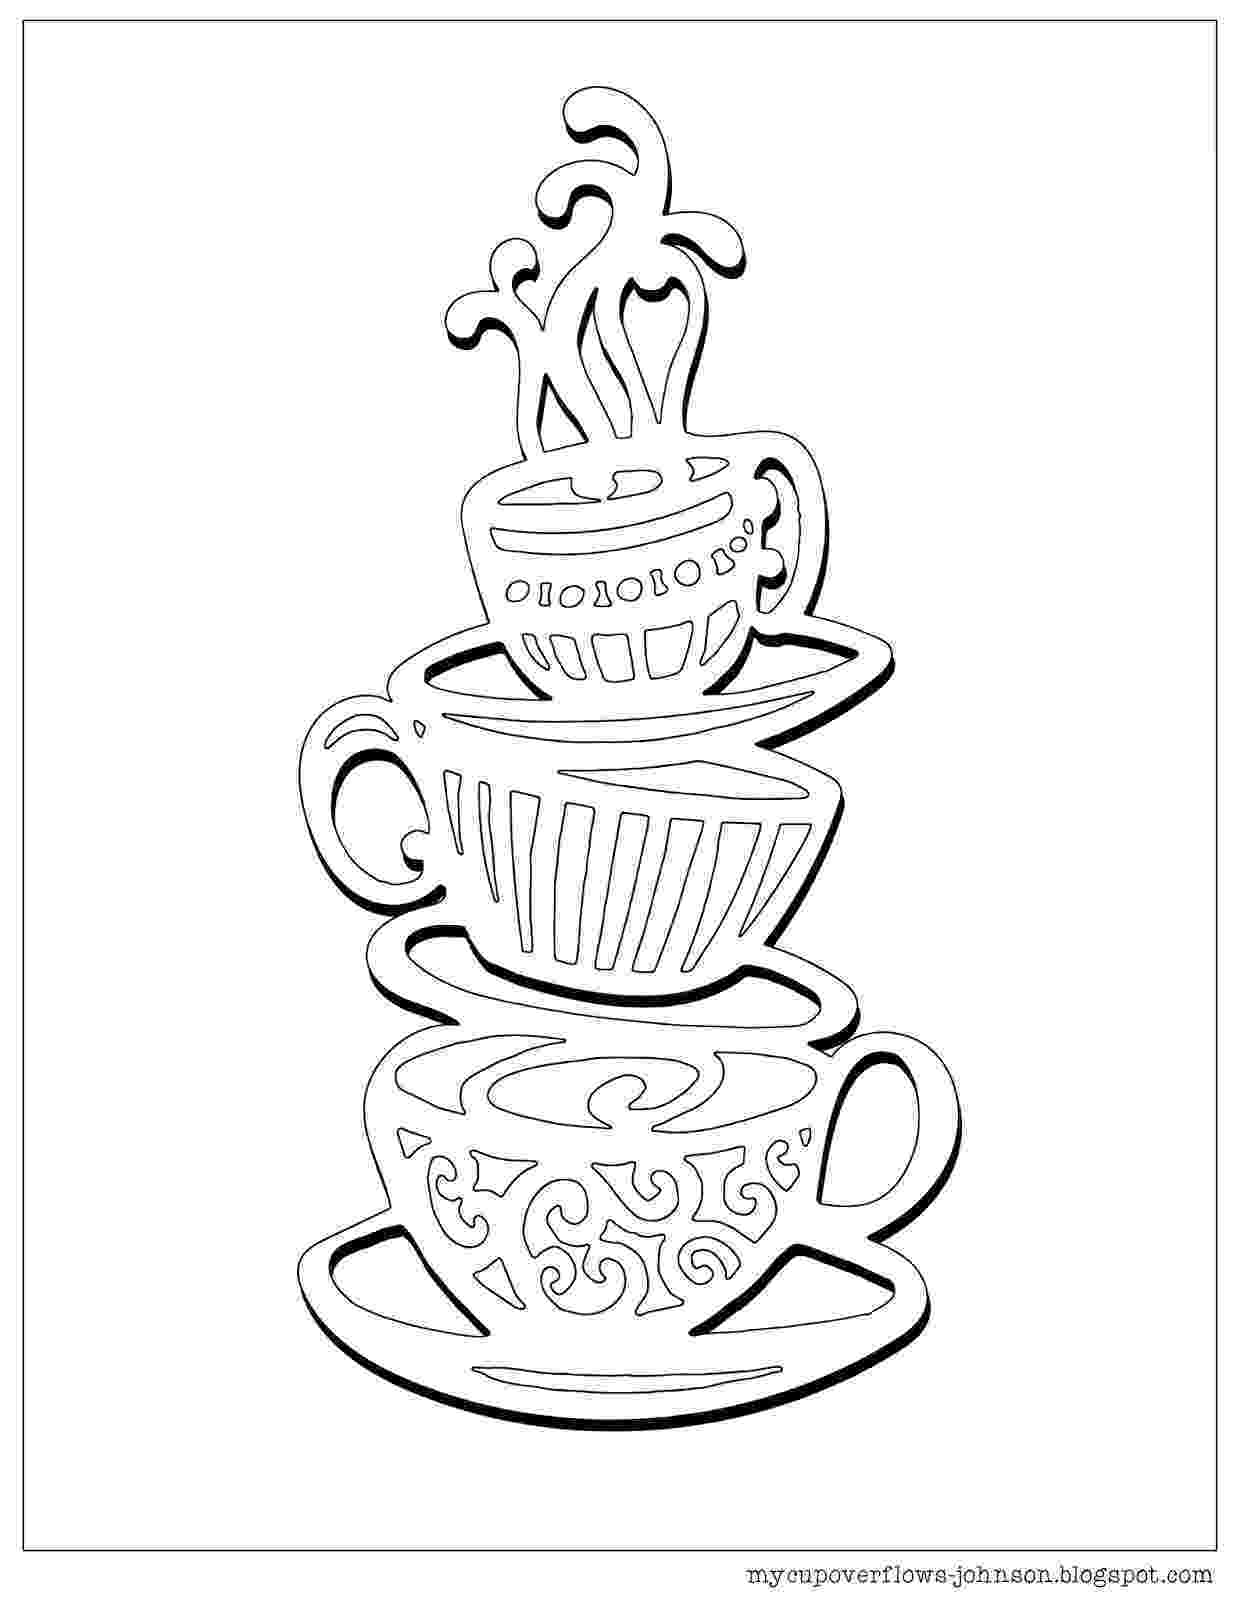 coffee cup coloring pages my cup overflows tea and coffee cup coloring coffee pages